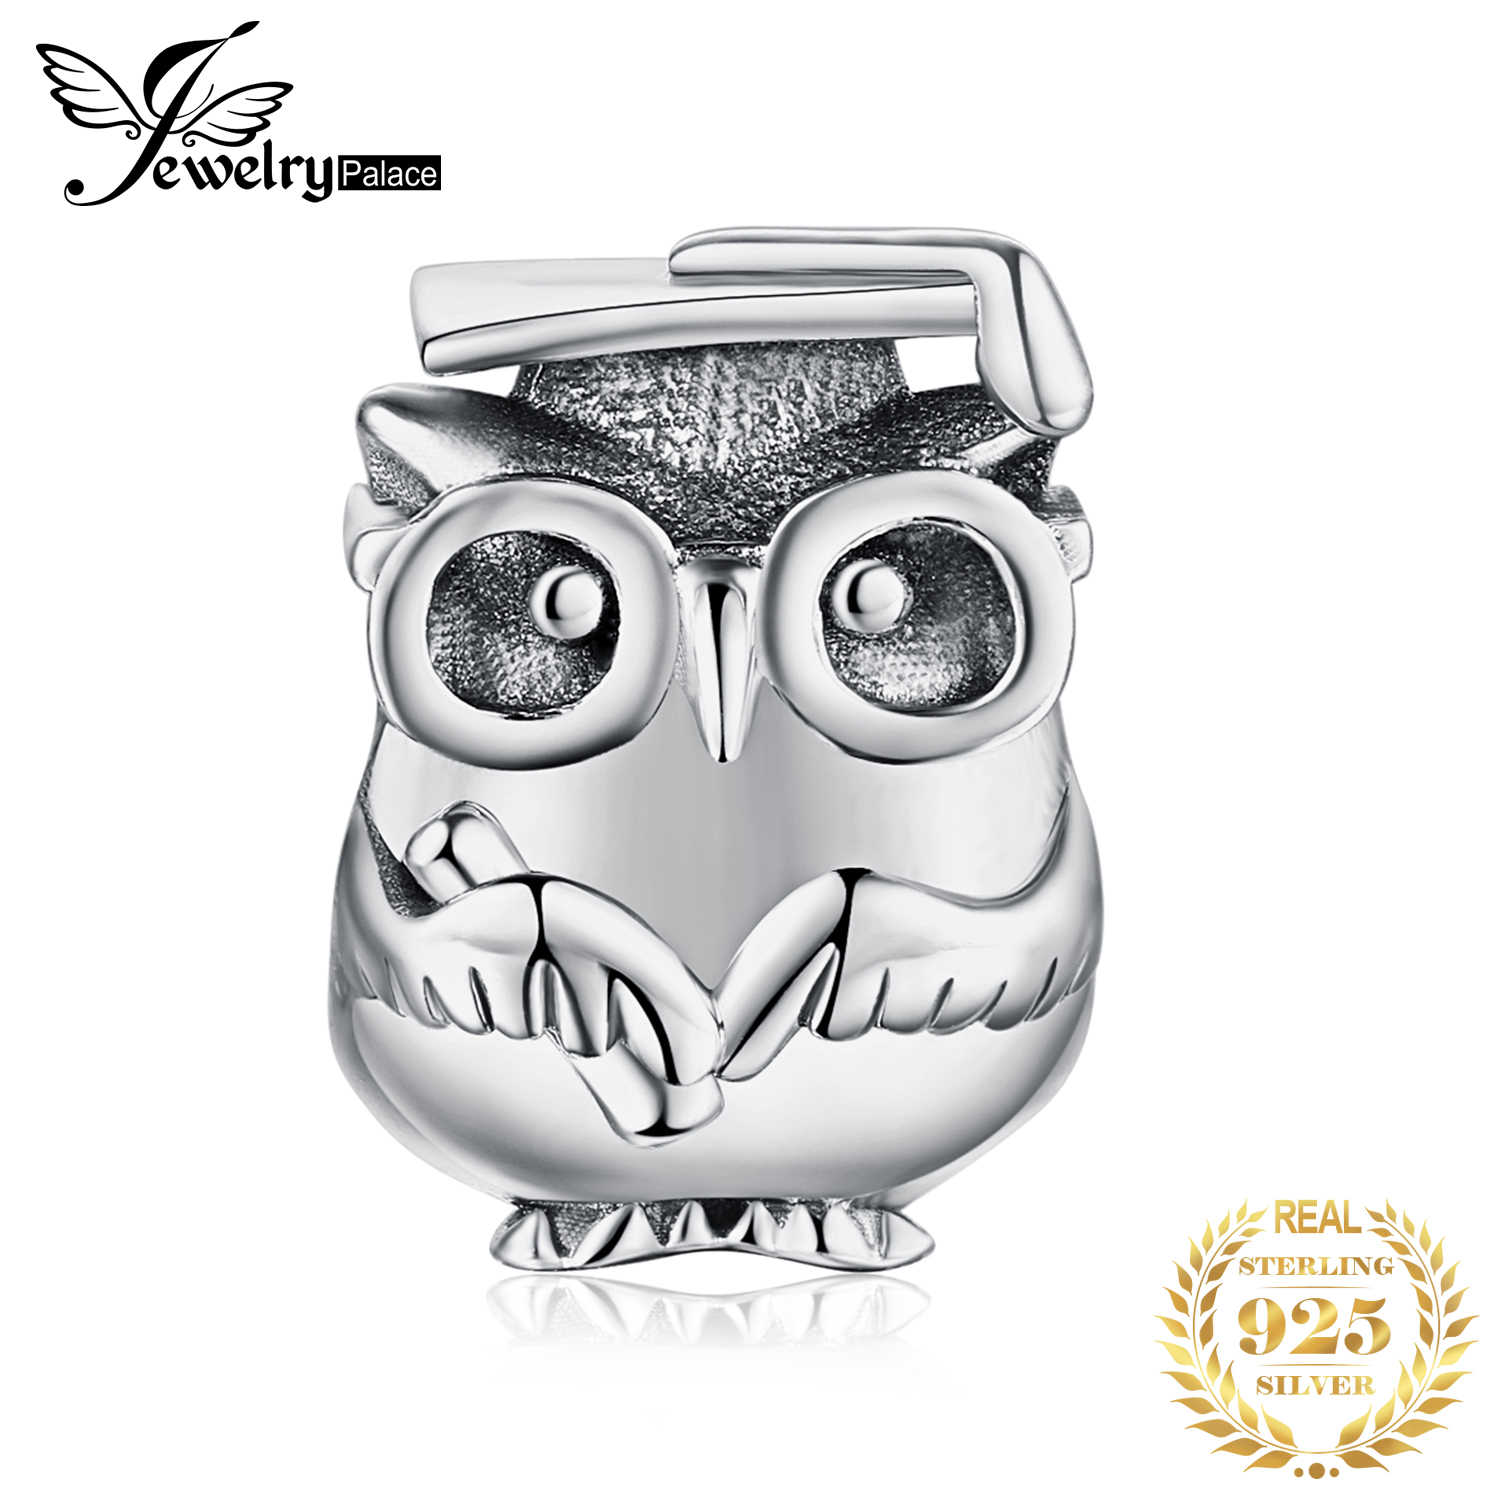 JewelryPalace 925 Sterling Silver Wise Owl Beads Charms Silver 925 Original Fit Bracelet Silver 925 original For Jewelry Making